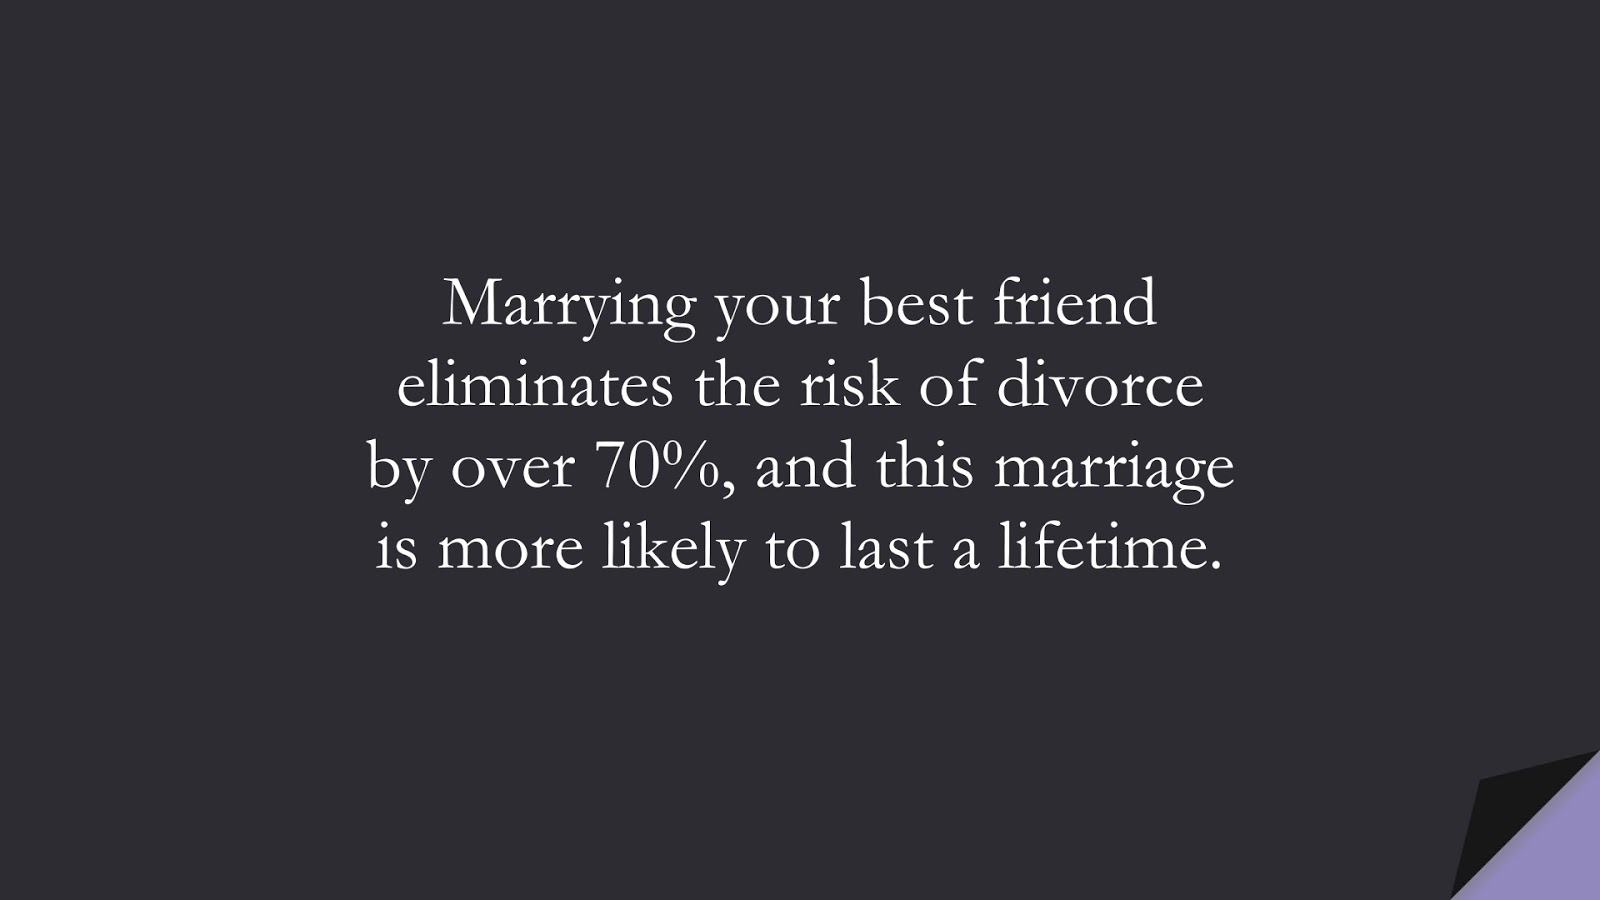 Marrying your best friend eliminates the risk of divorce by over 70%, and this marriage is more likely to last a lifetime.FALSE